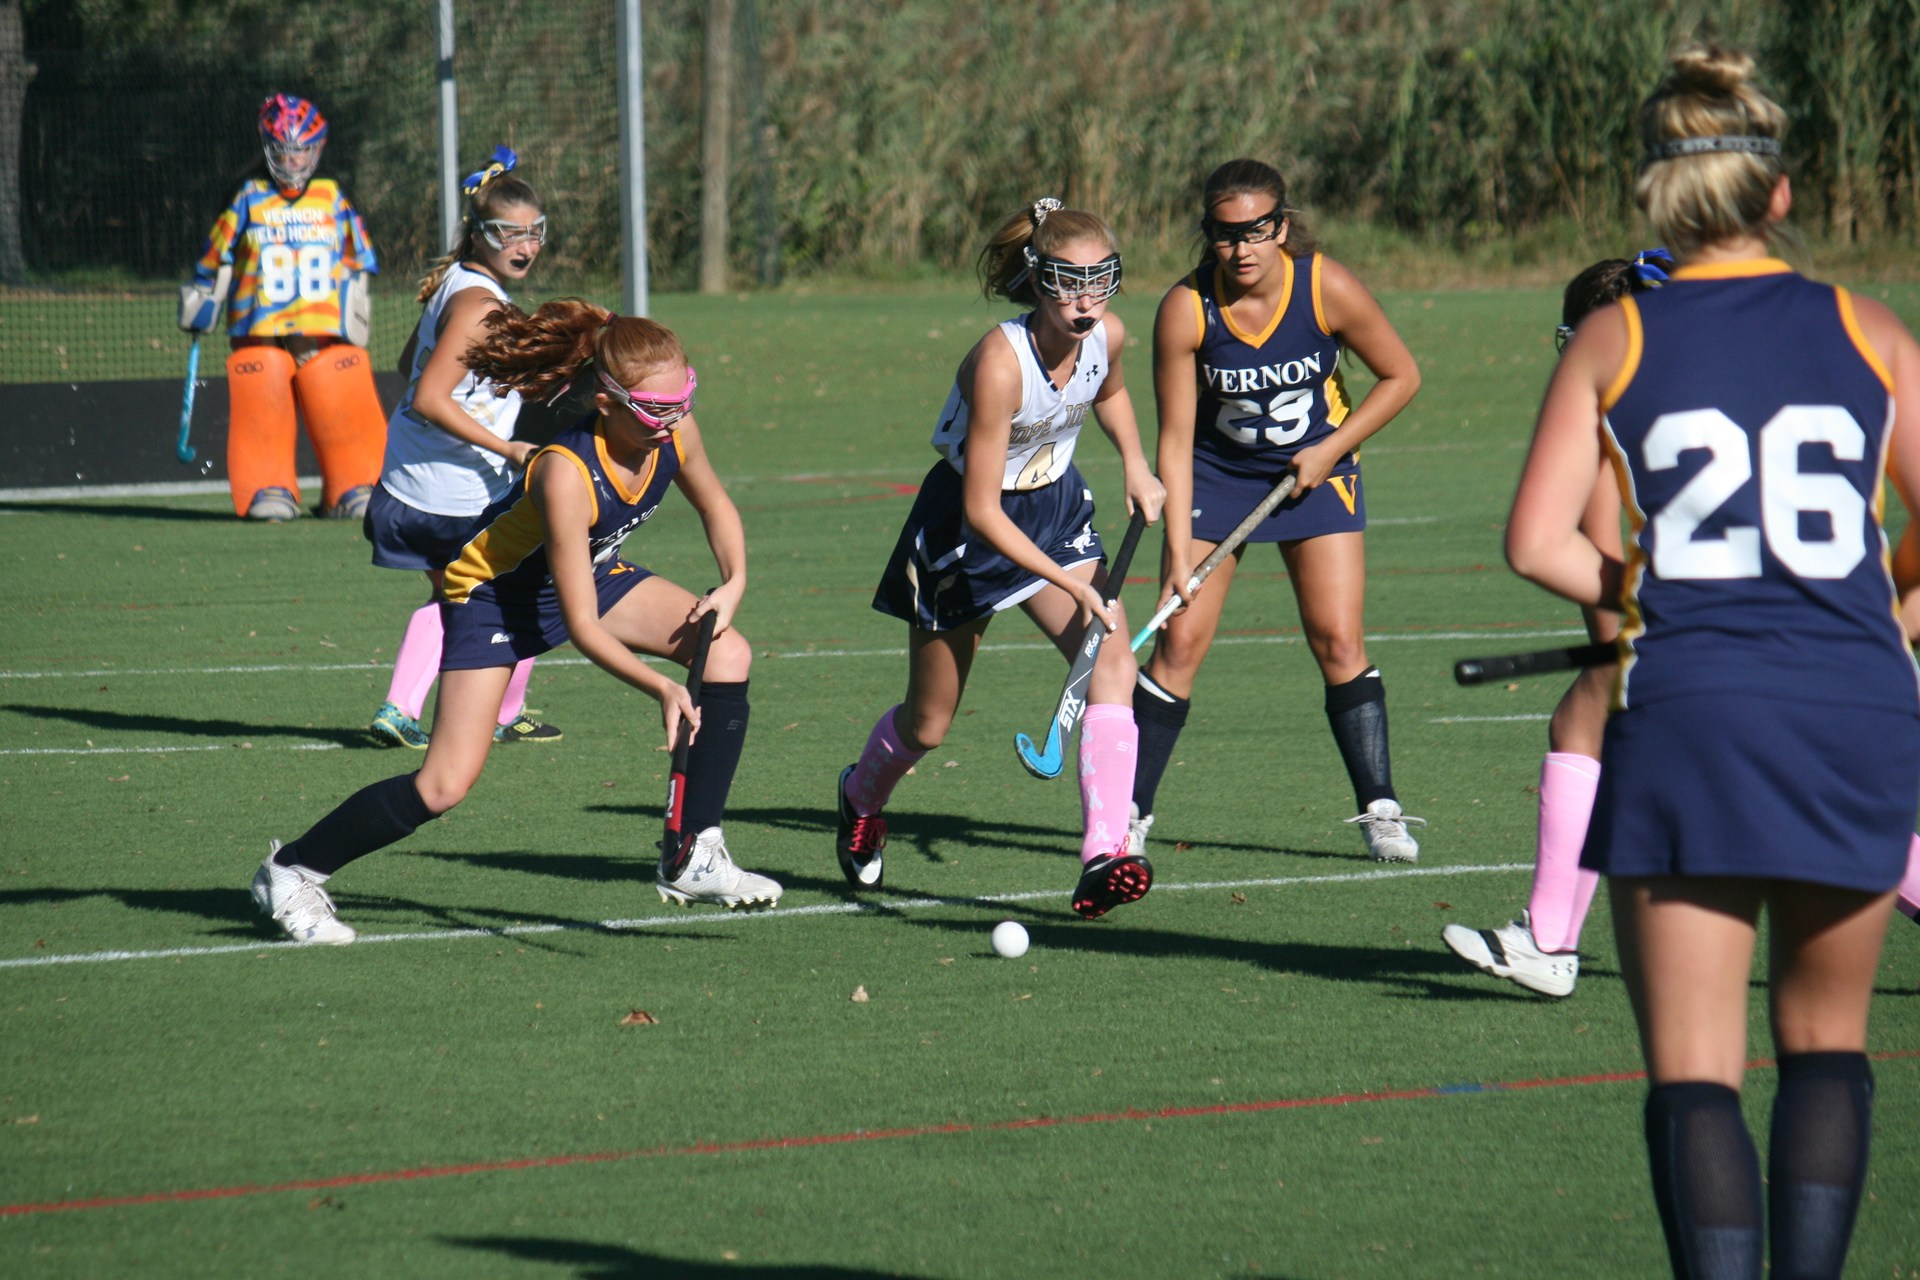 PJ field hockey